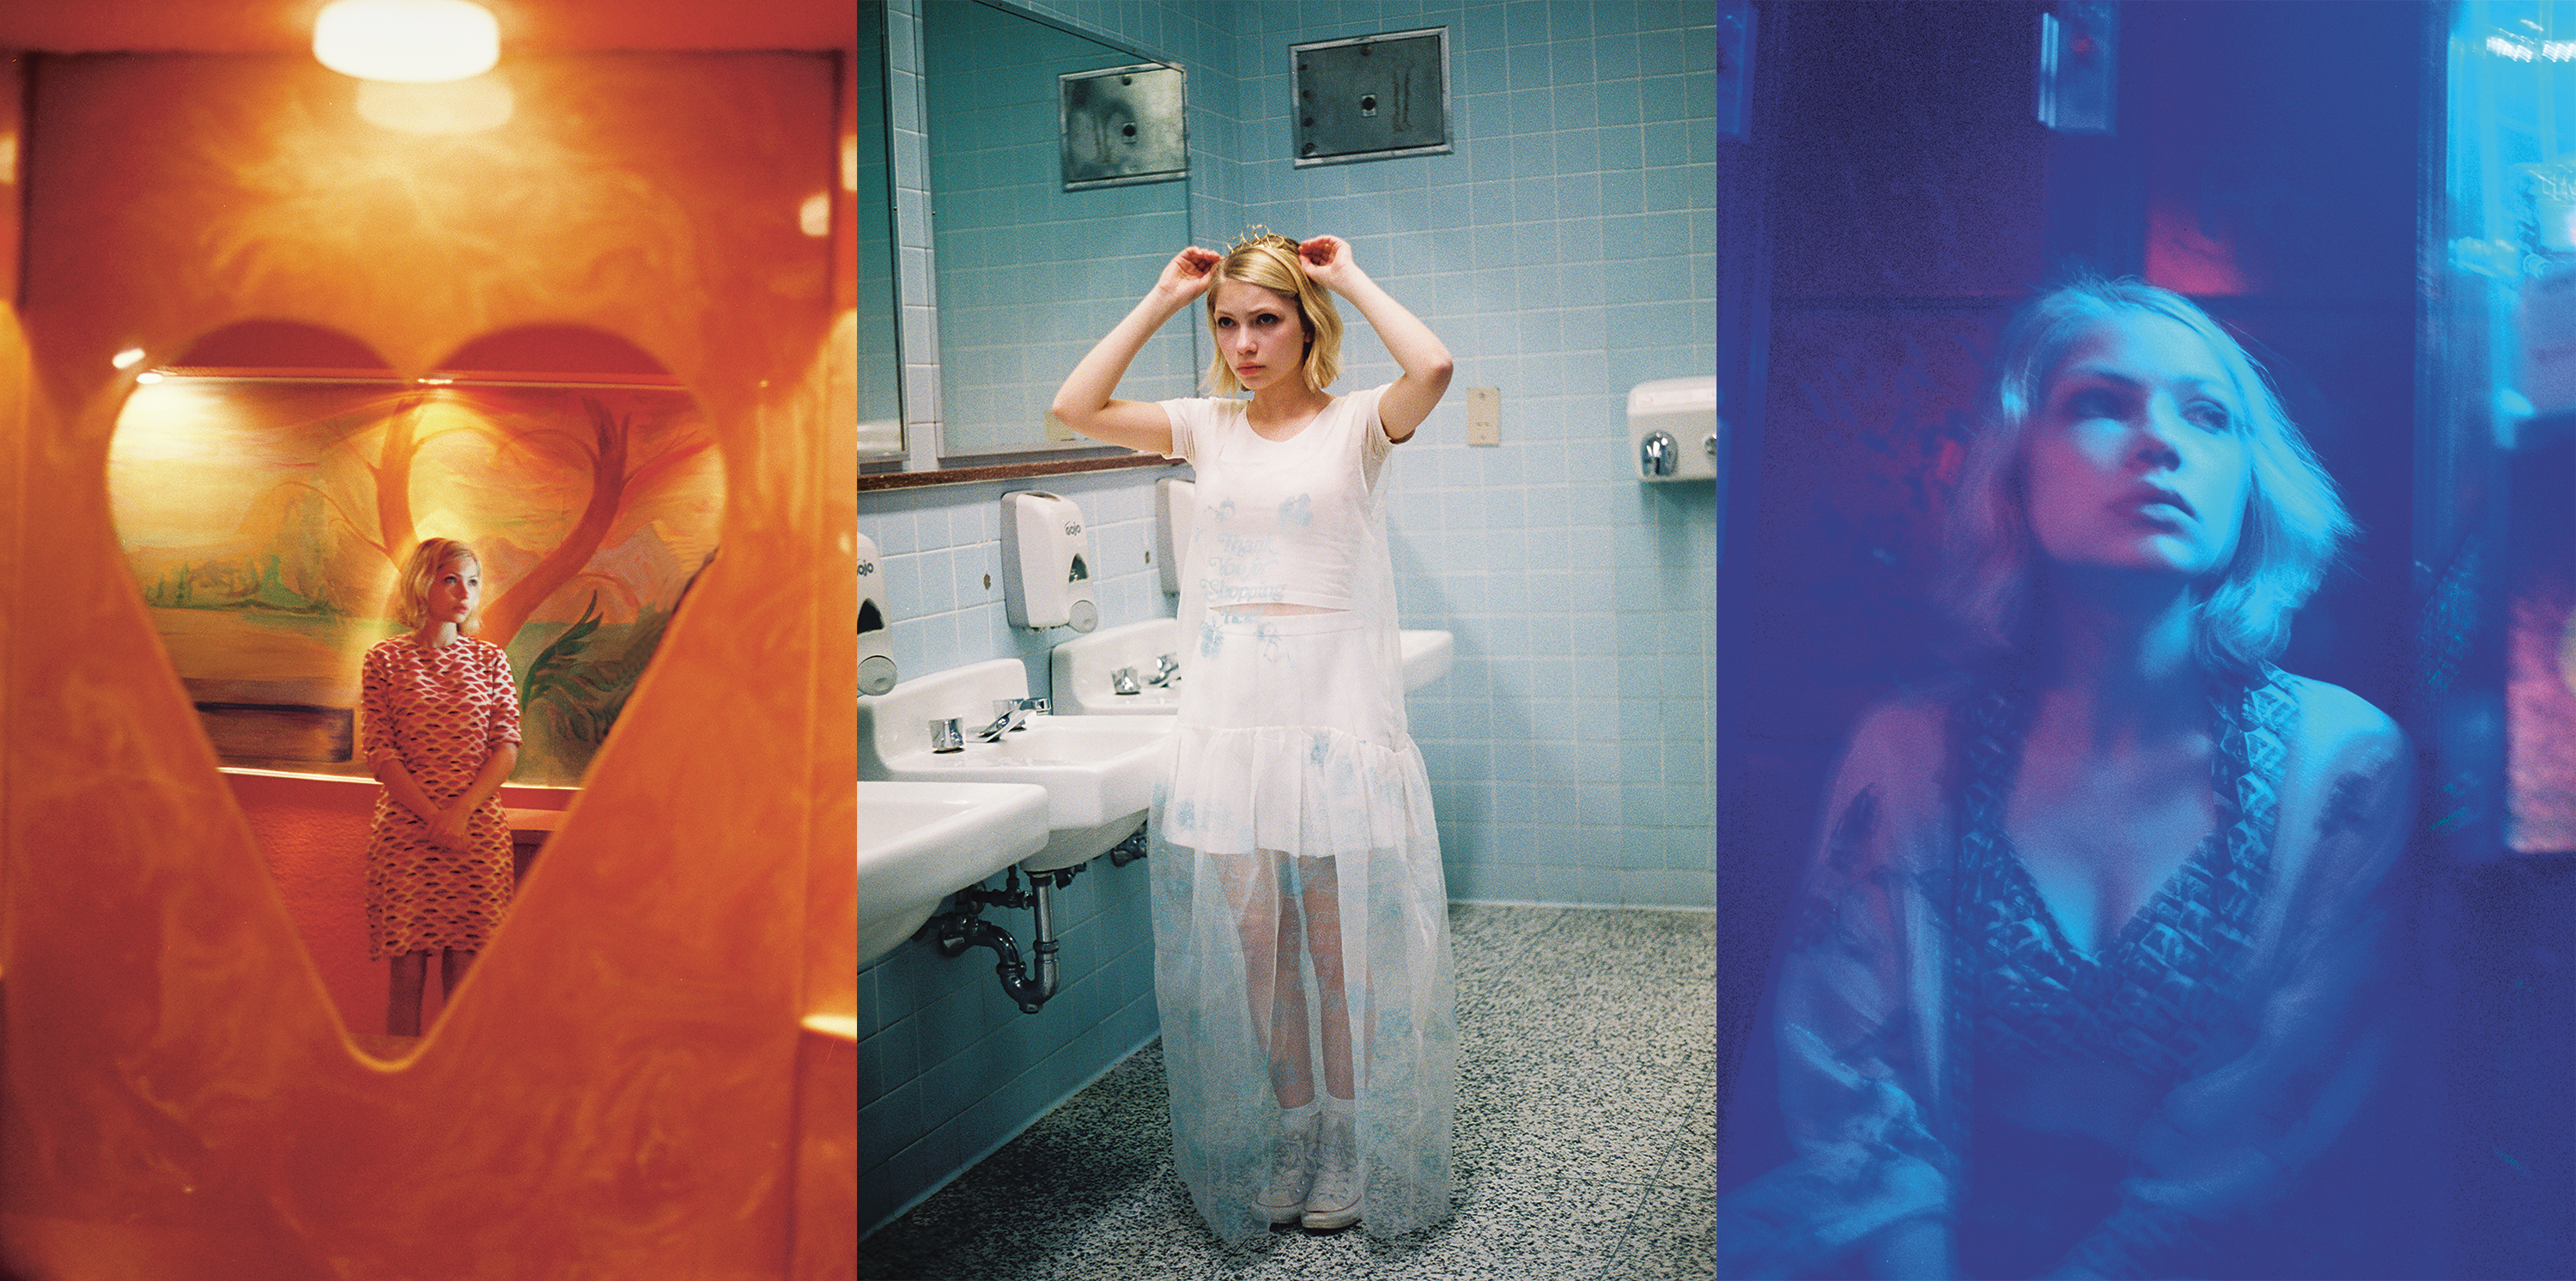 5de10ead4 Who is Petra Collins? Welcome to the Petra Collins photography ...